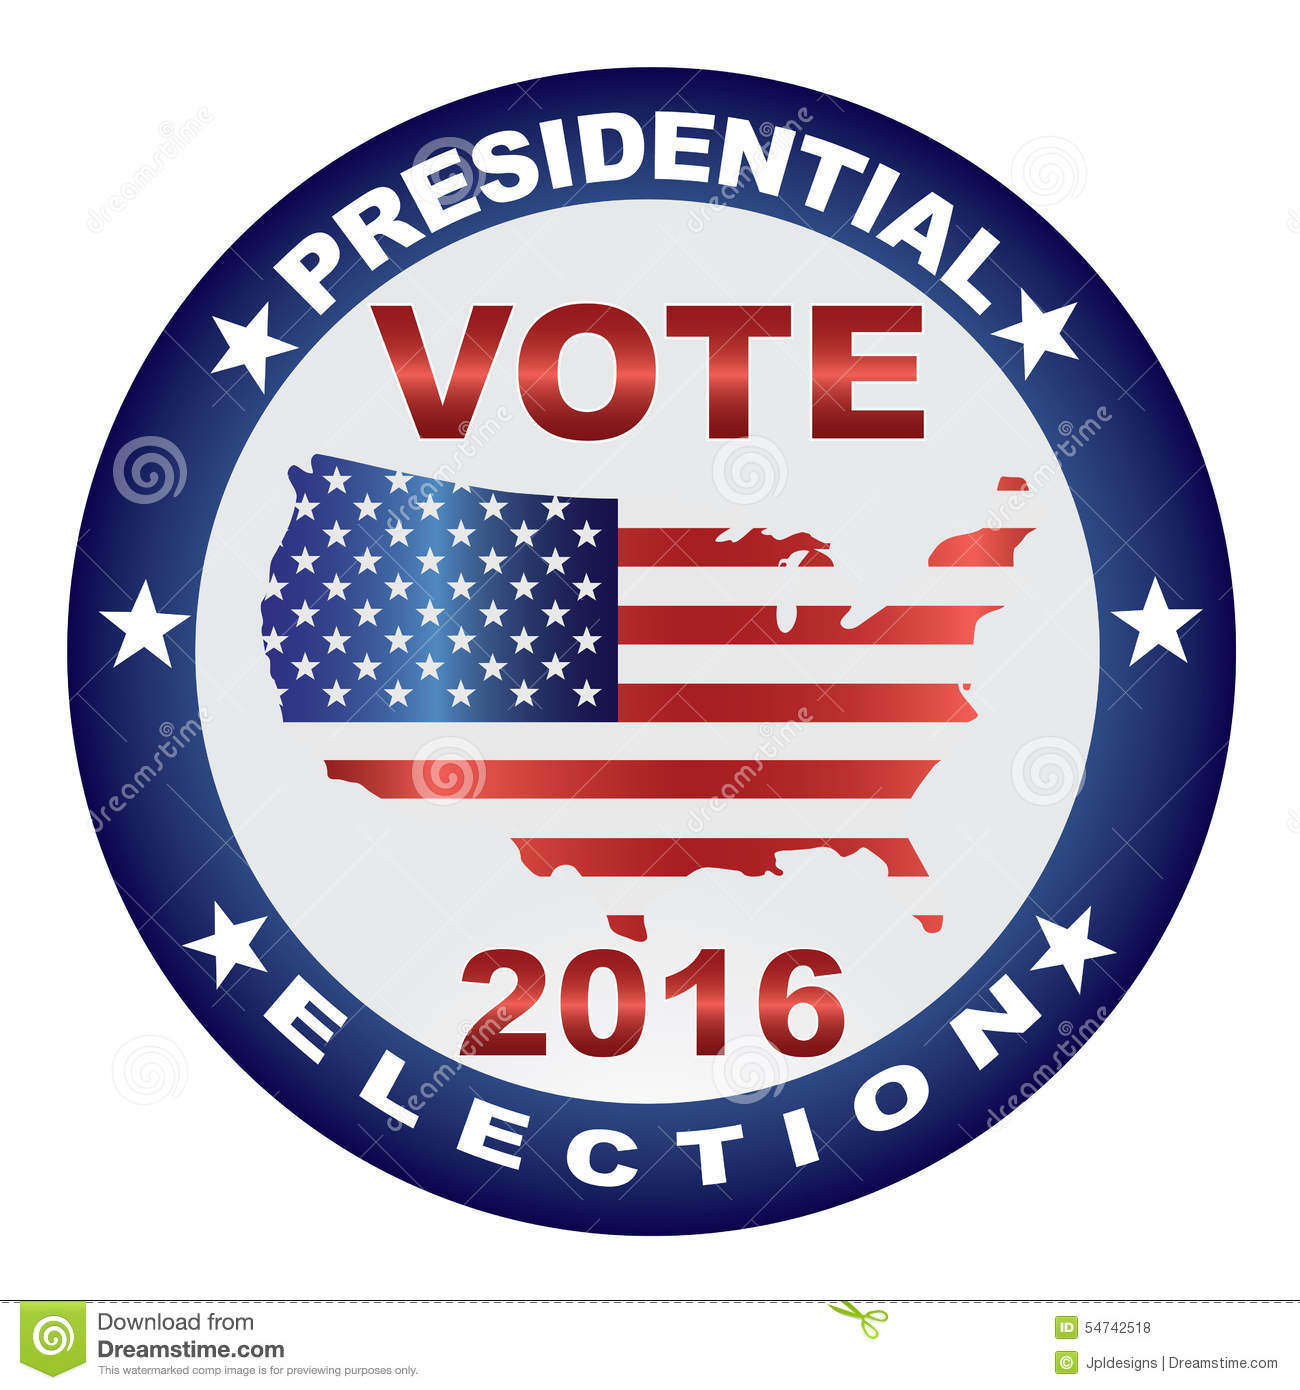 Presidential Election Day 2016 Stock Photo.